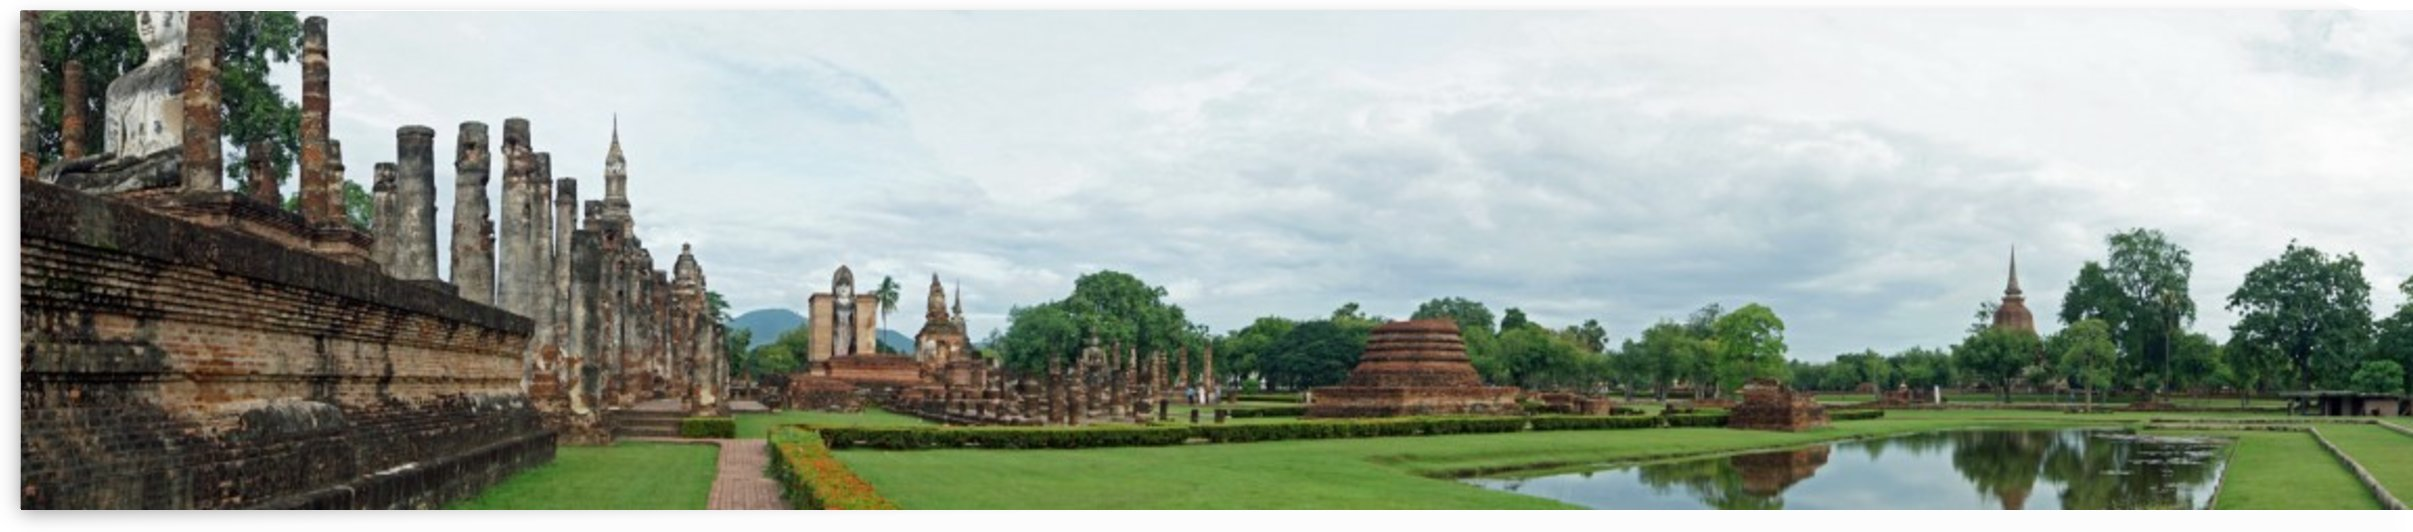 ruins in the historical park in sukhothai by Babett-s Bildergalerie